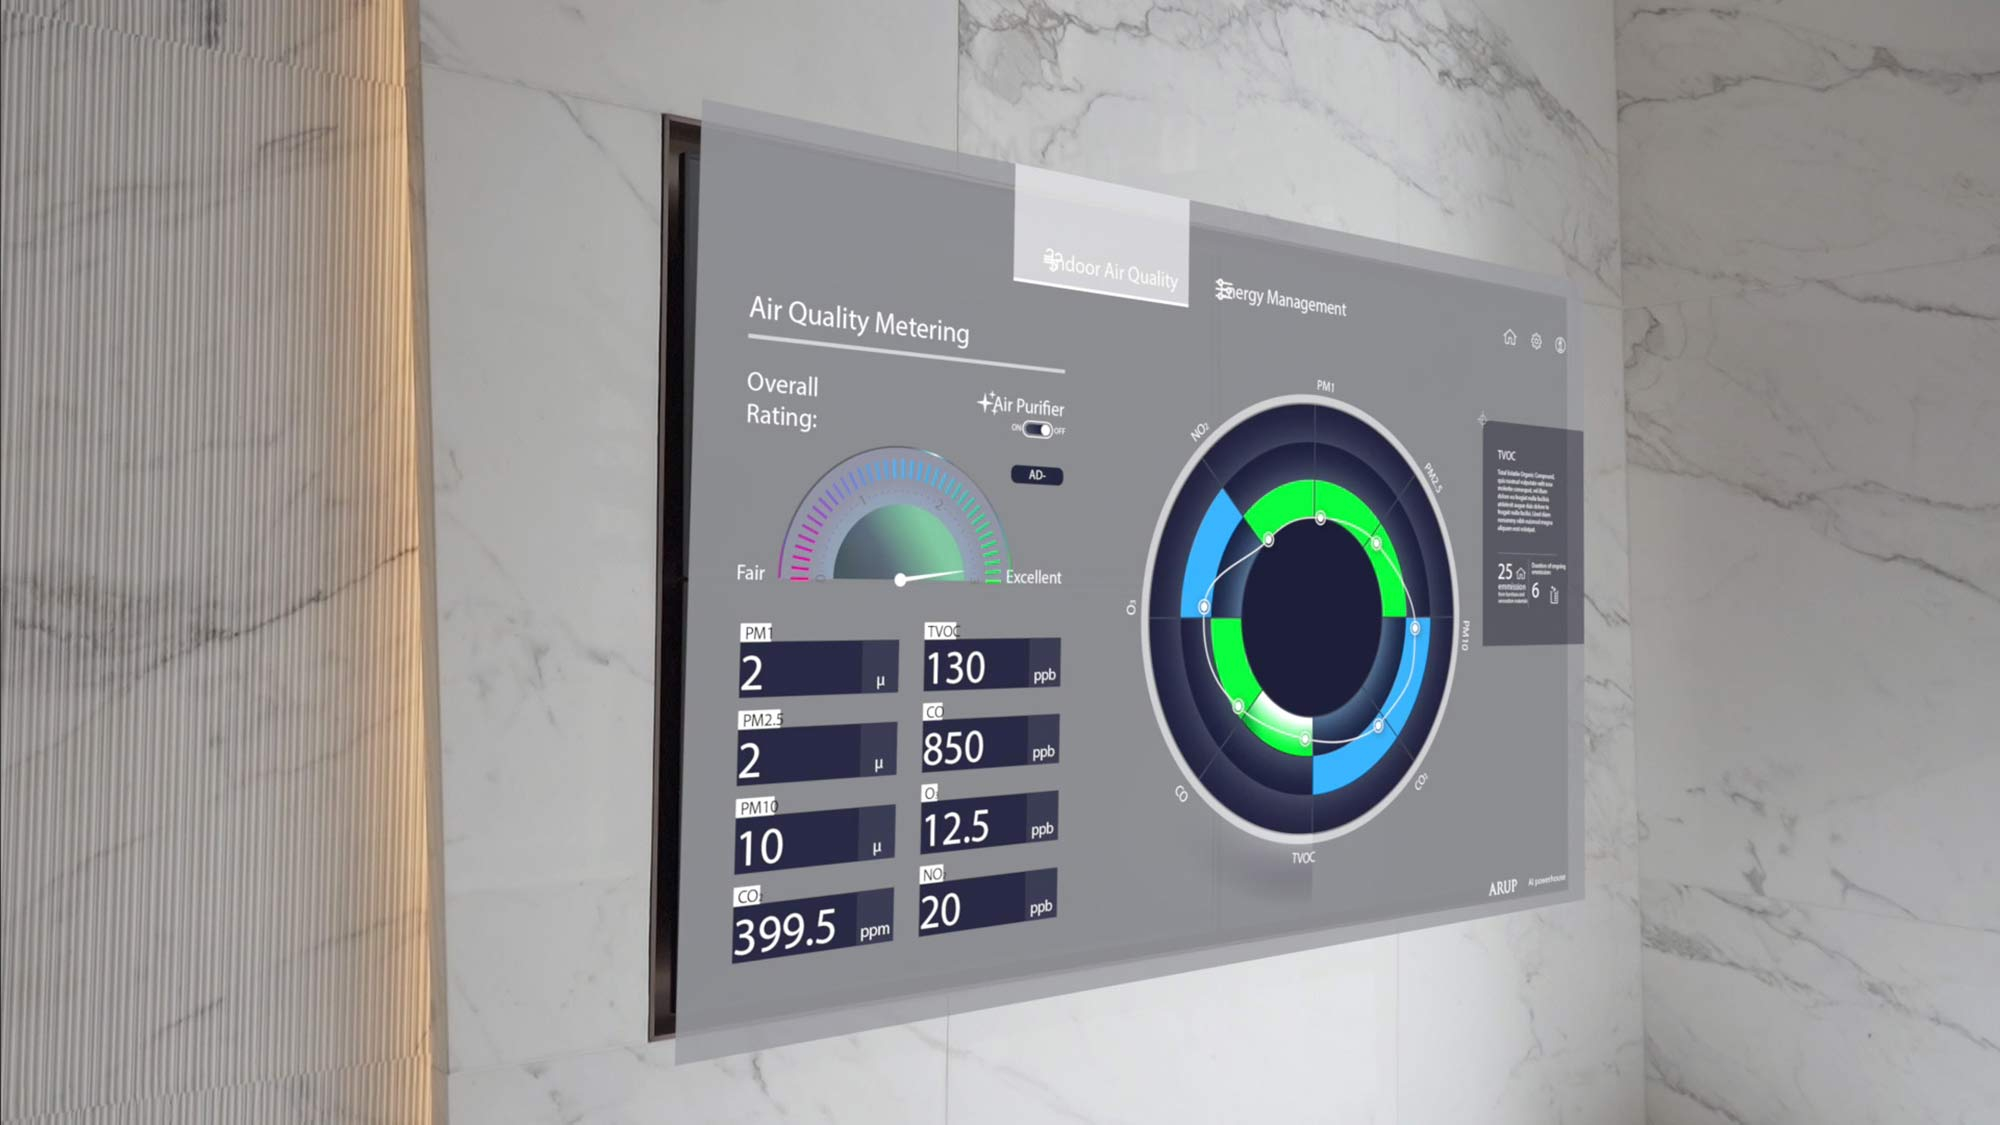 Dynamic air quality data analytic and display